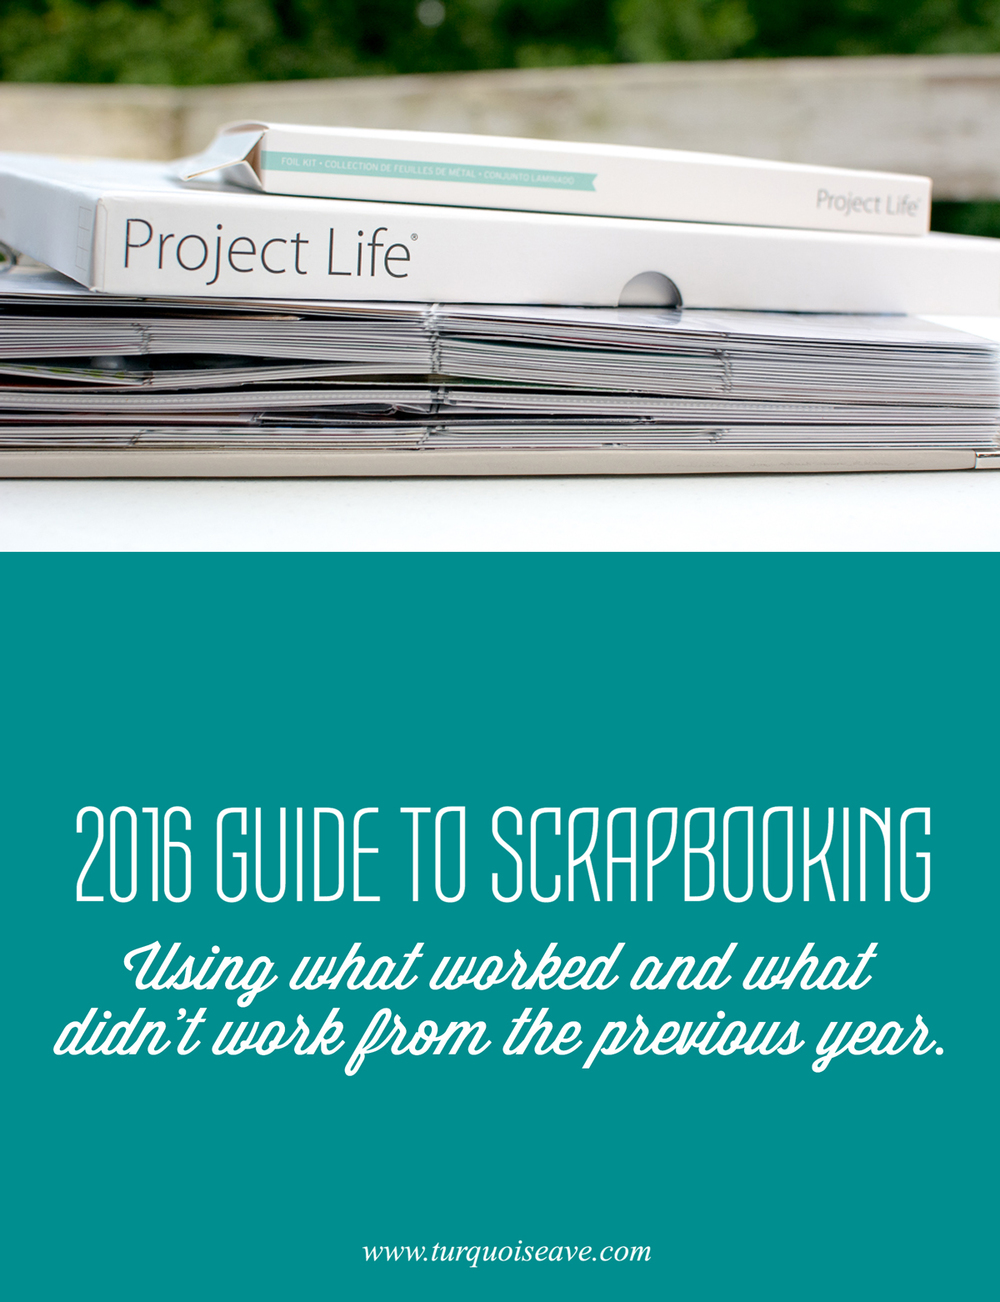 Pin This: A comprehensive guide to scrapbooking in the new year using what worked and what did not work in the year past.